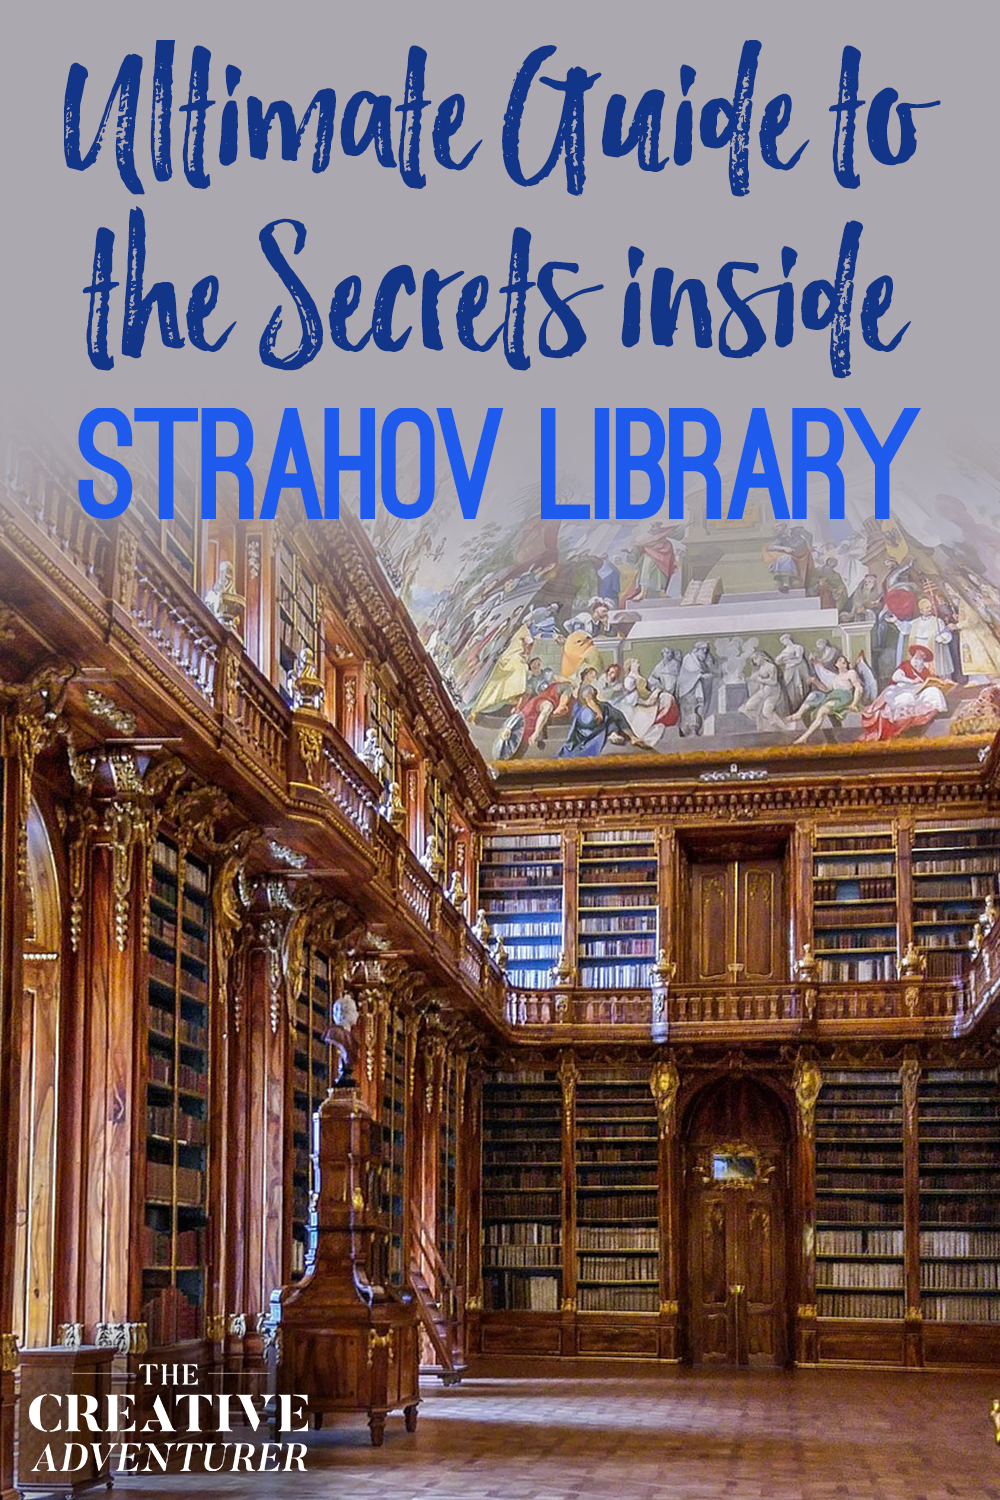 Ultimate Guide to the Secrets inside the stunning Strahov Library, Prague